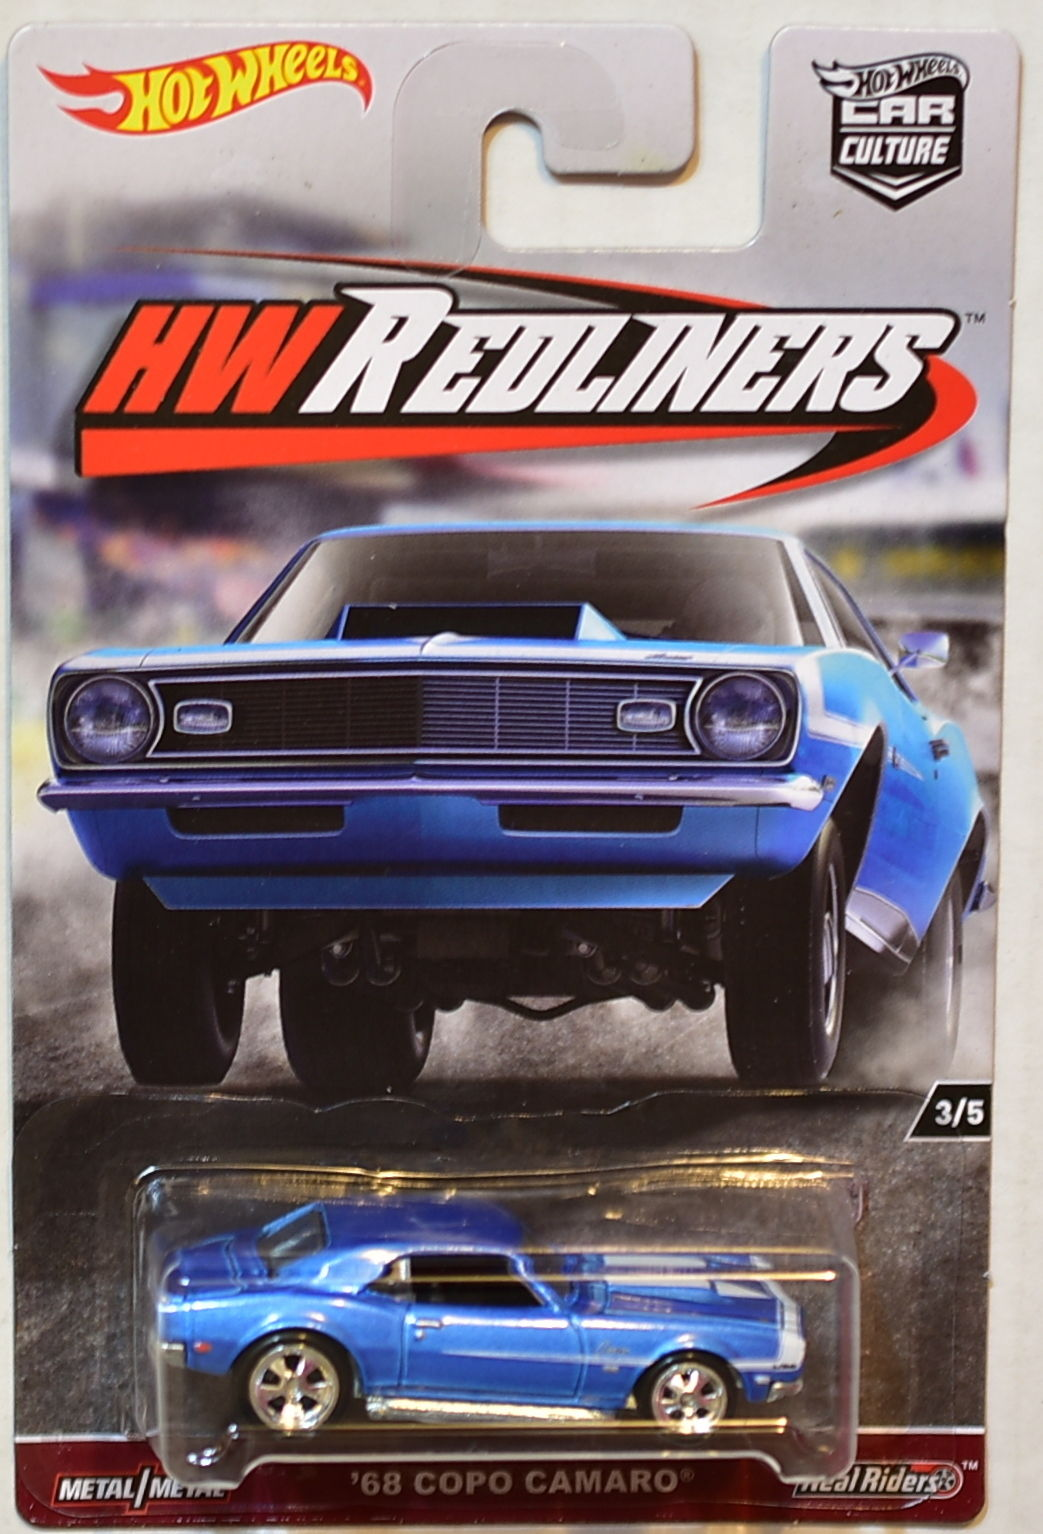 HOT WHEELS 2017 CAR CULTURE HW REDLINERS '68 COPO CAMARO BLUE #3/5